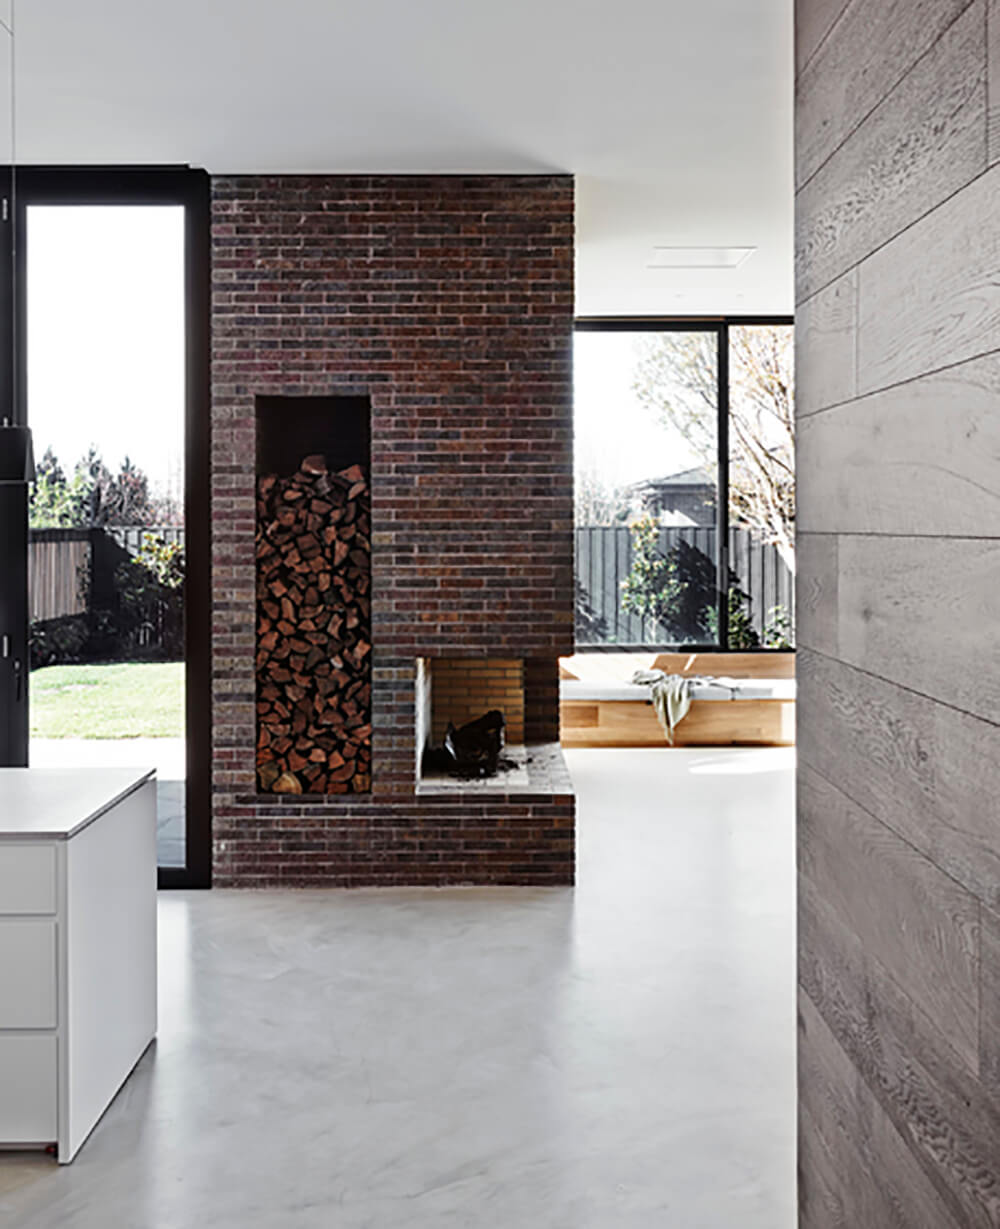 The fireplace is an integral part of the house, with its red brick construction anchoring the ultra-modern interior in a more timeless atmosphere. With built-in storage for firewood, it's as useful as it is beautiful.